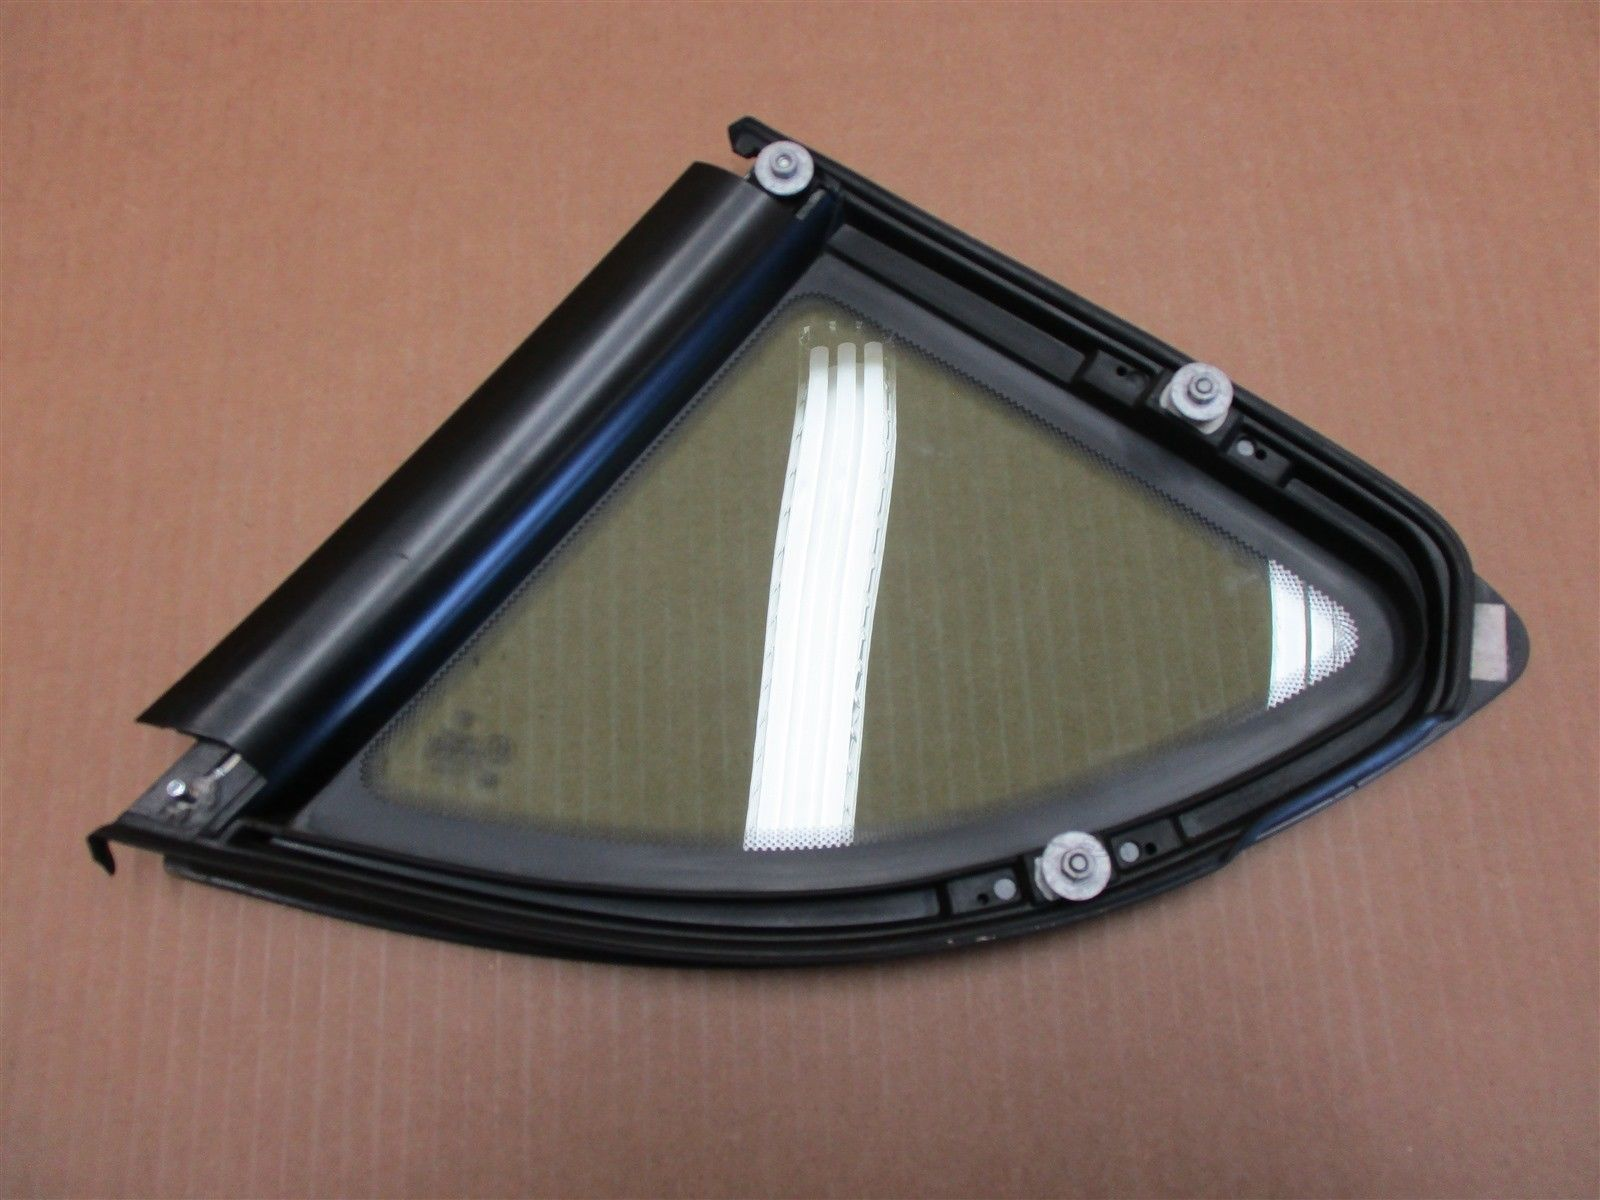 06 Cayman S RWD Porsche 987 R REAR STARGLASS QUARTER WINDOW 43R-000469 57,607